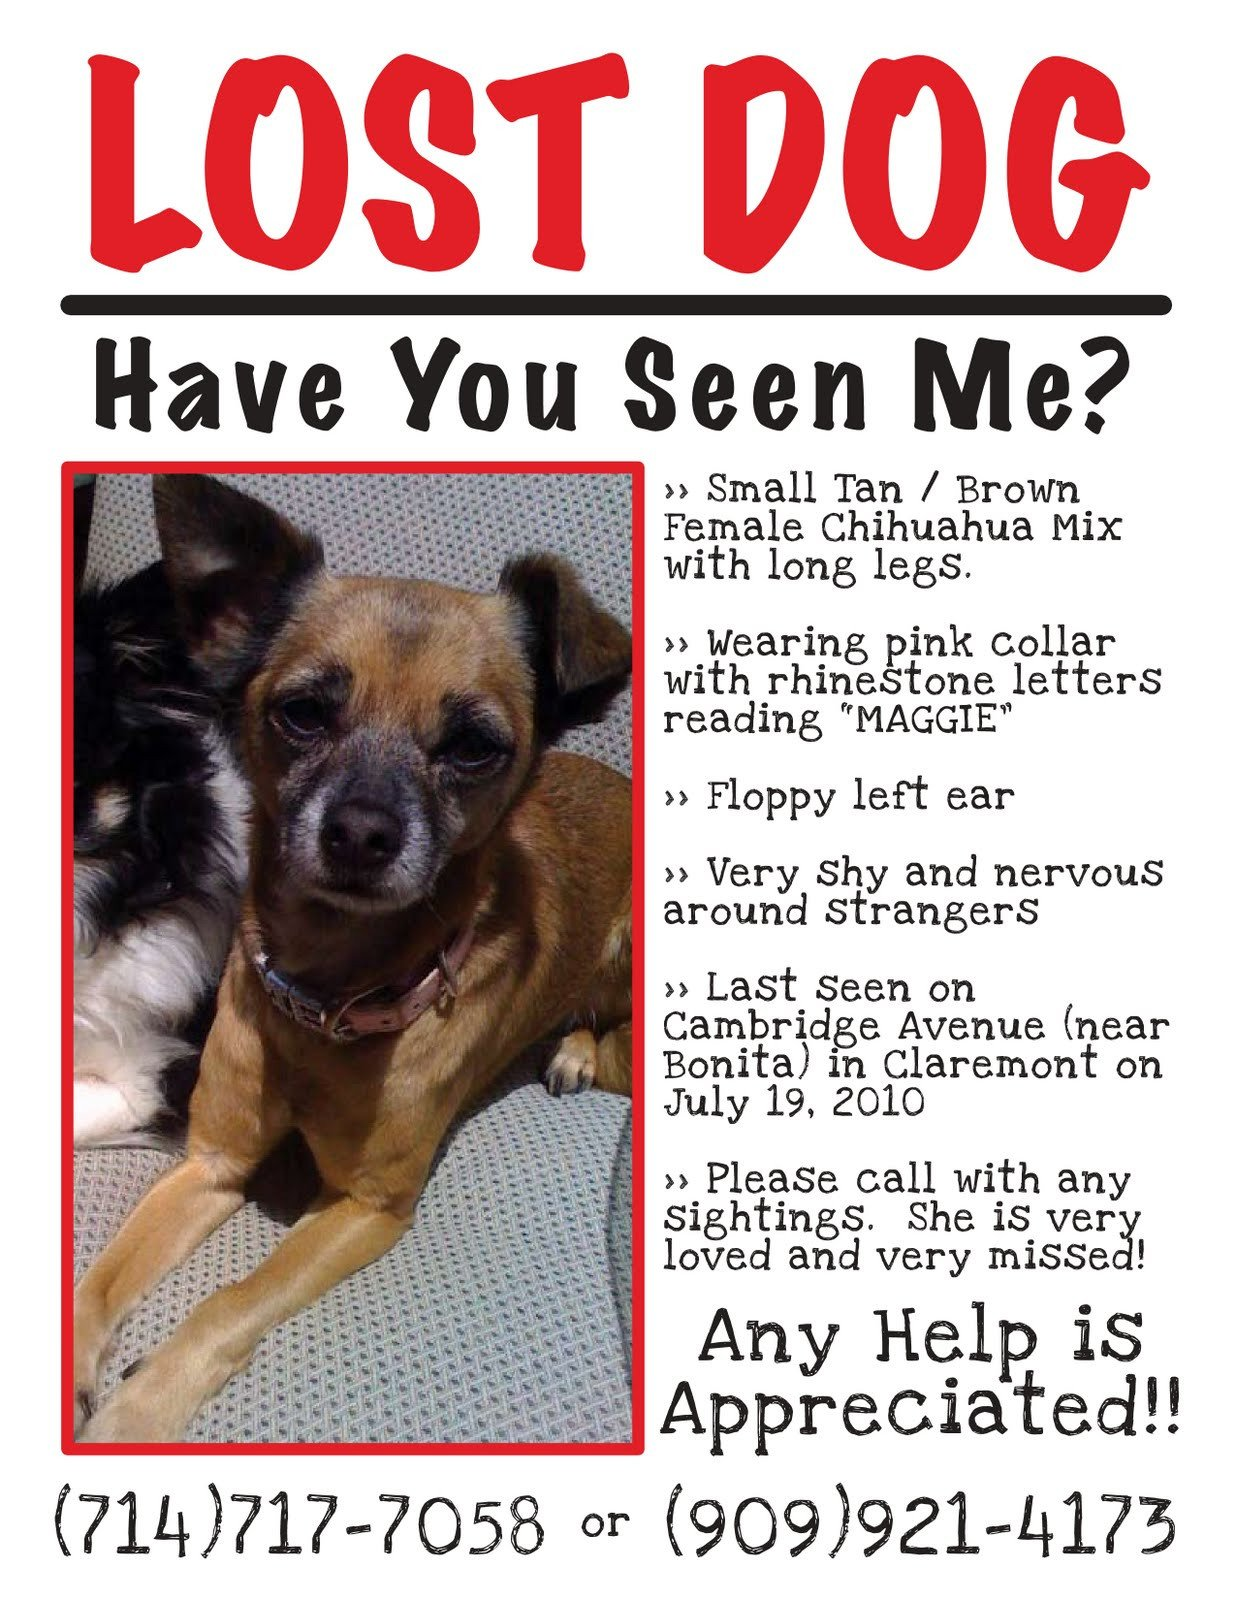 Missing Dog Flyer Template Claremont Insider Lost Dog